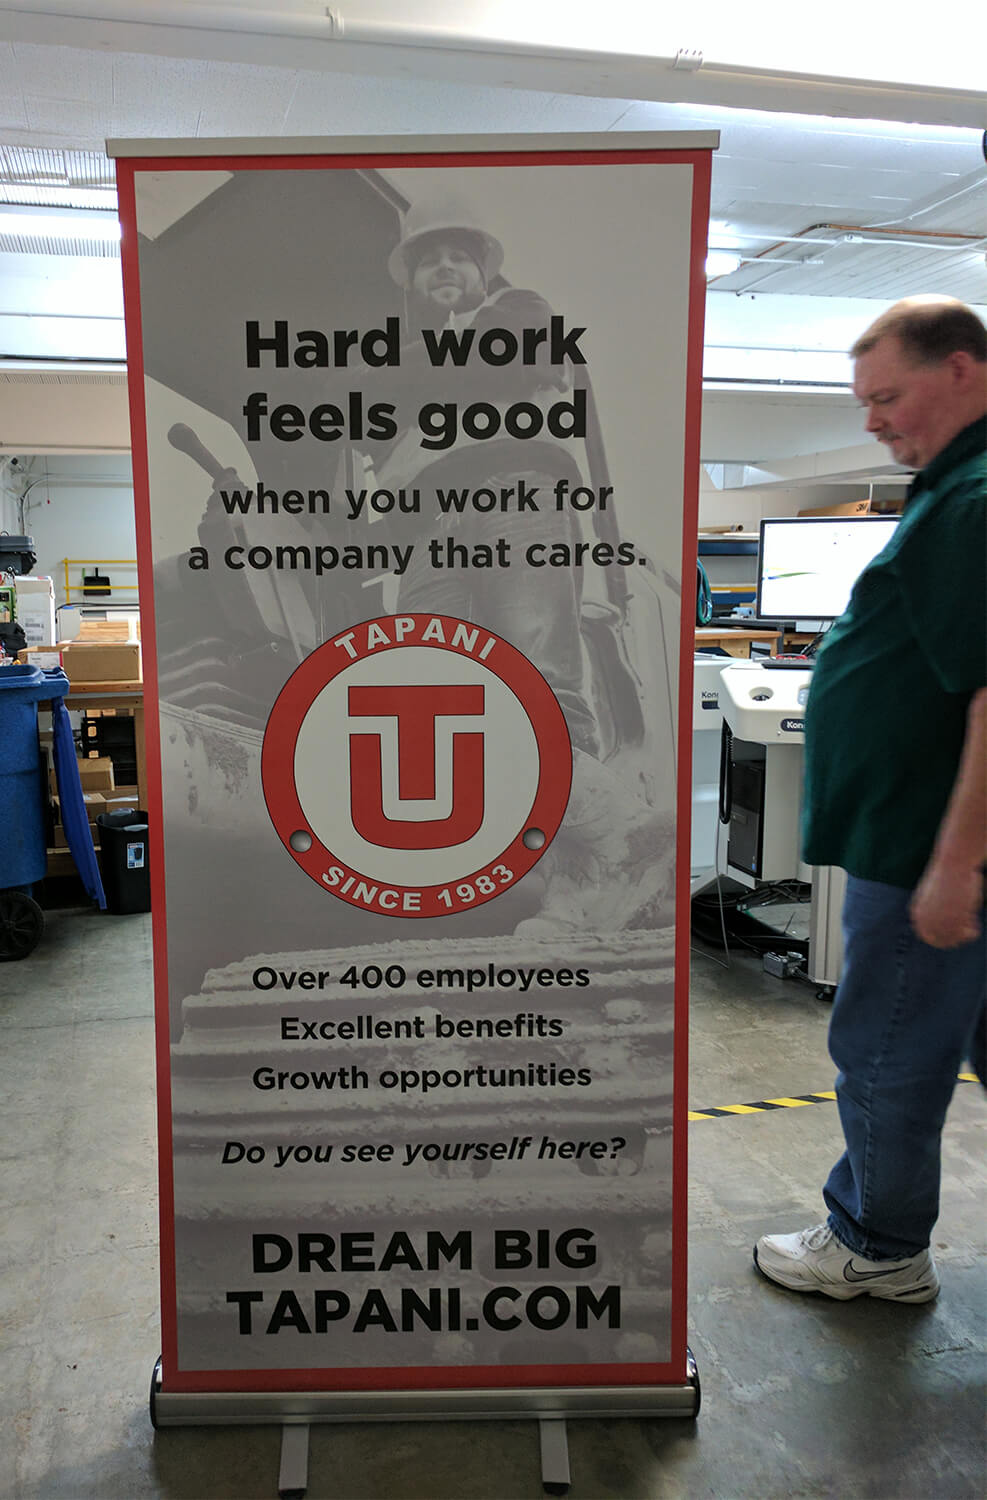 Stand-up banner, roughly 7 feet tall